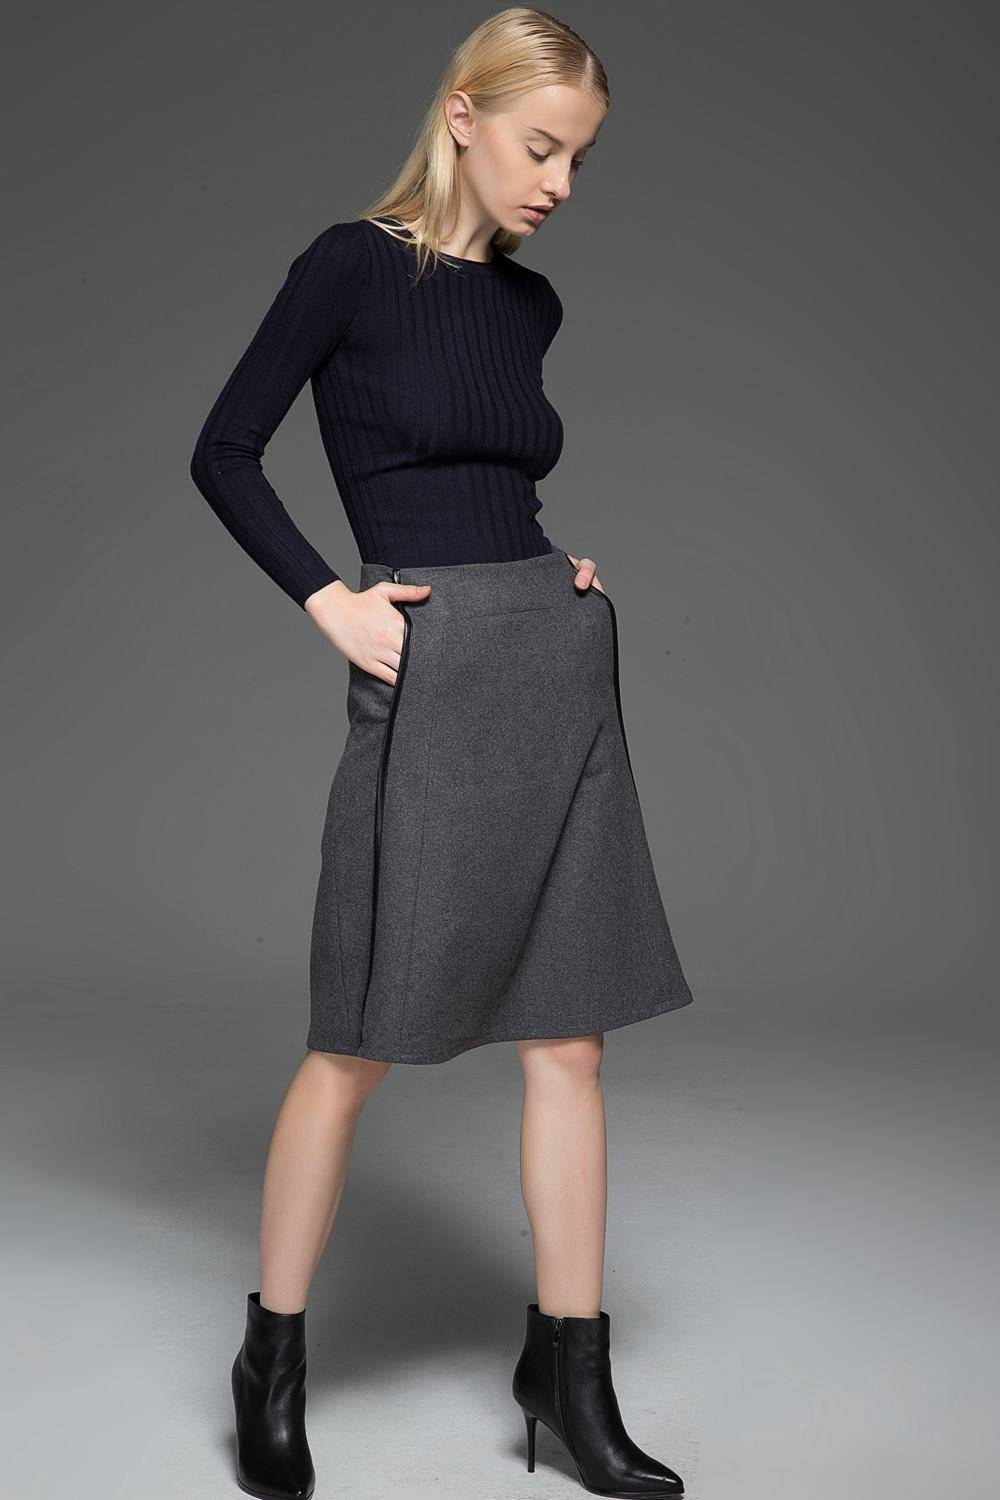 Gray skirt, wool skirt, winter skirt, womens skirts, midi skirt, gray wool skirt, office skirt, wool skirt women, winter wool skirt C774